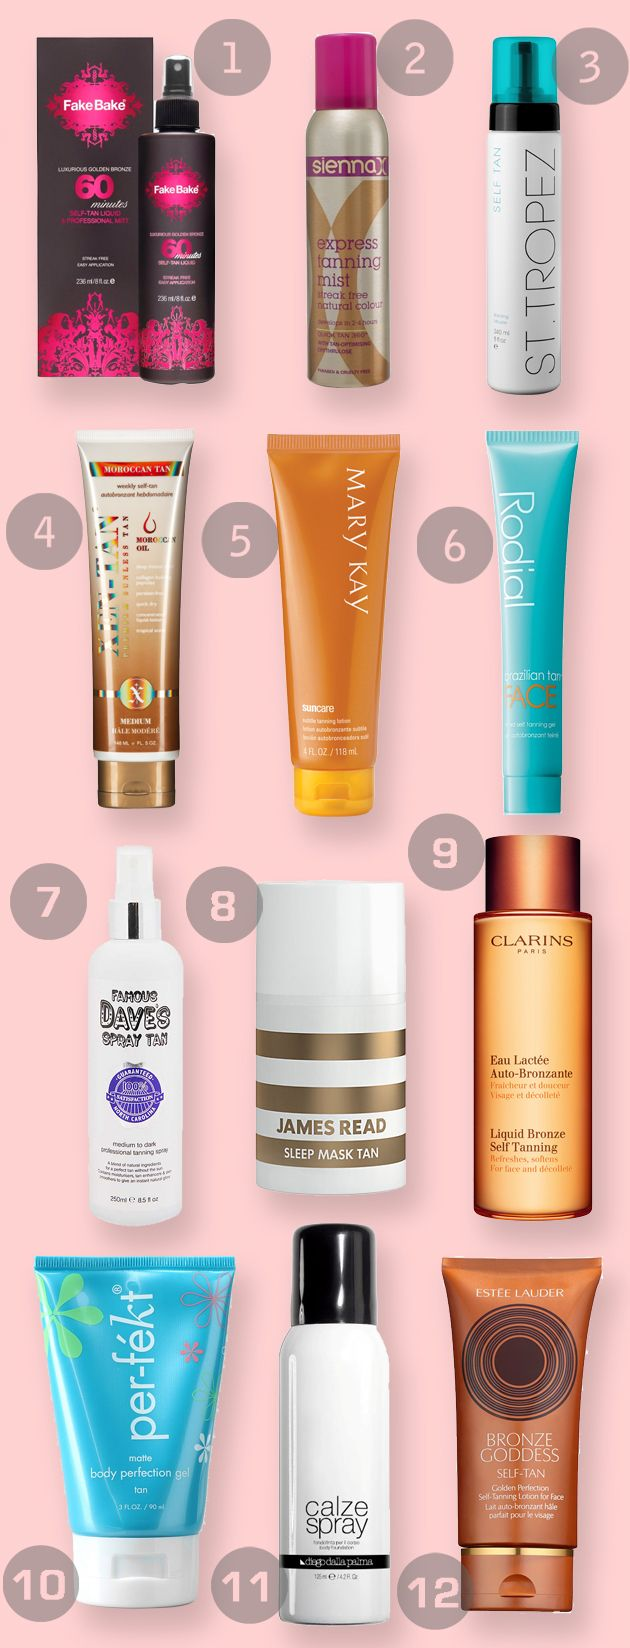 12 of the best fake tanning products